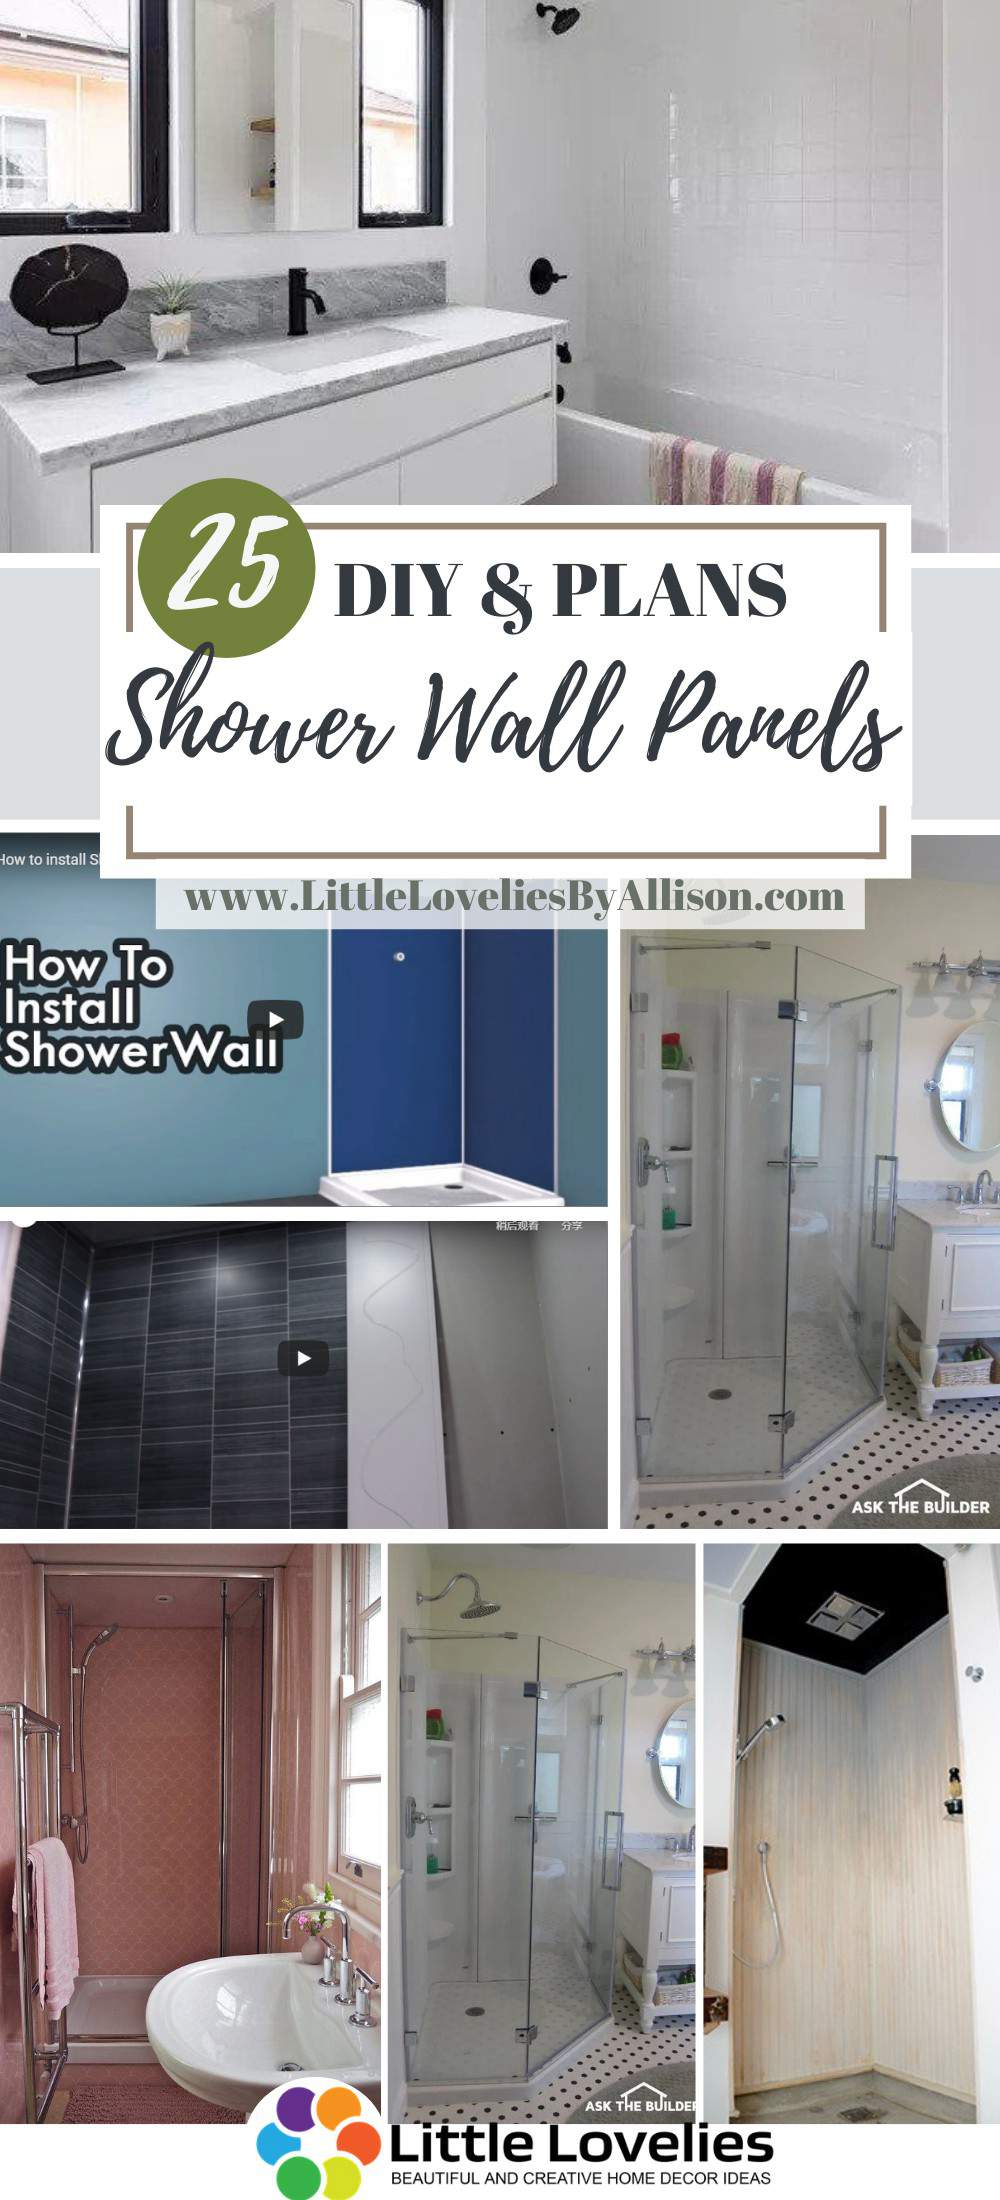 DIY Shower Wall Panels